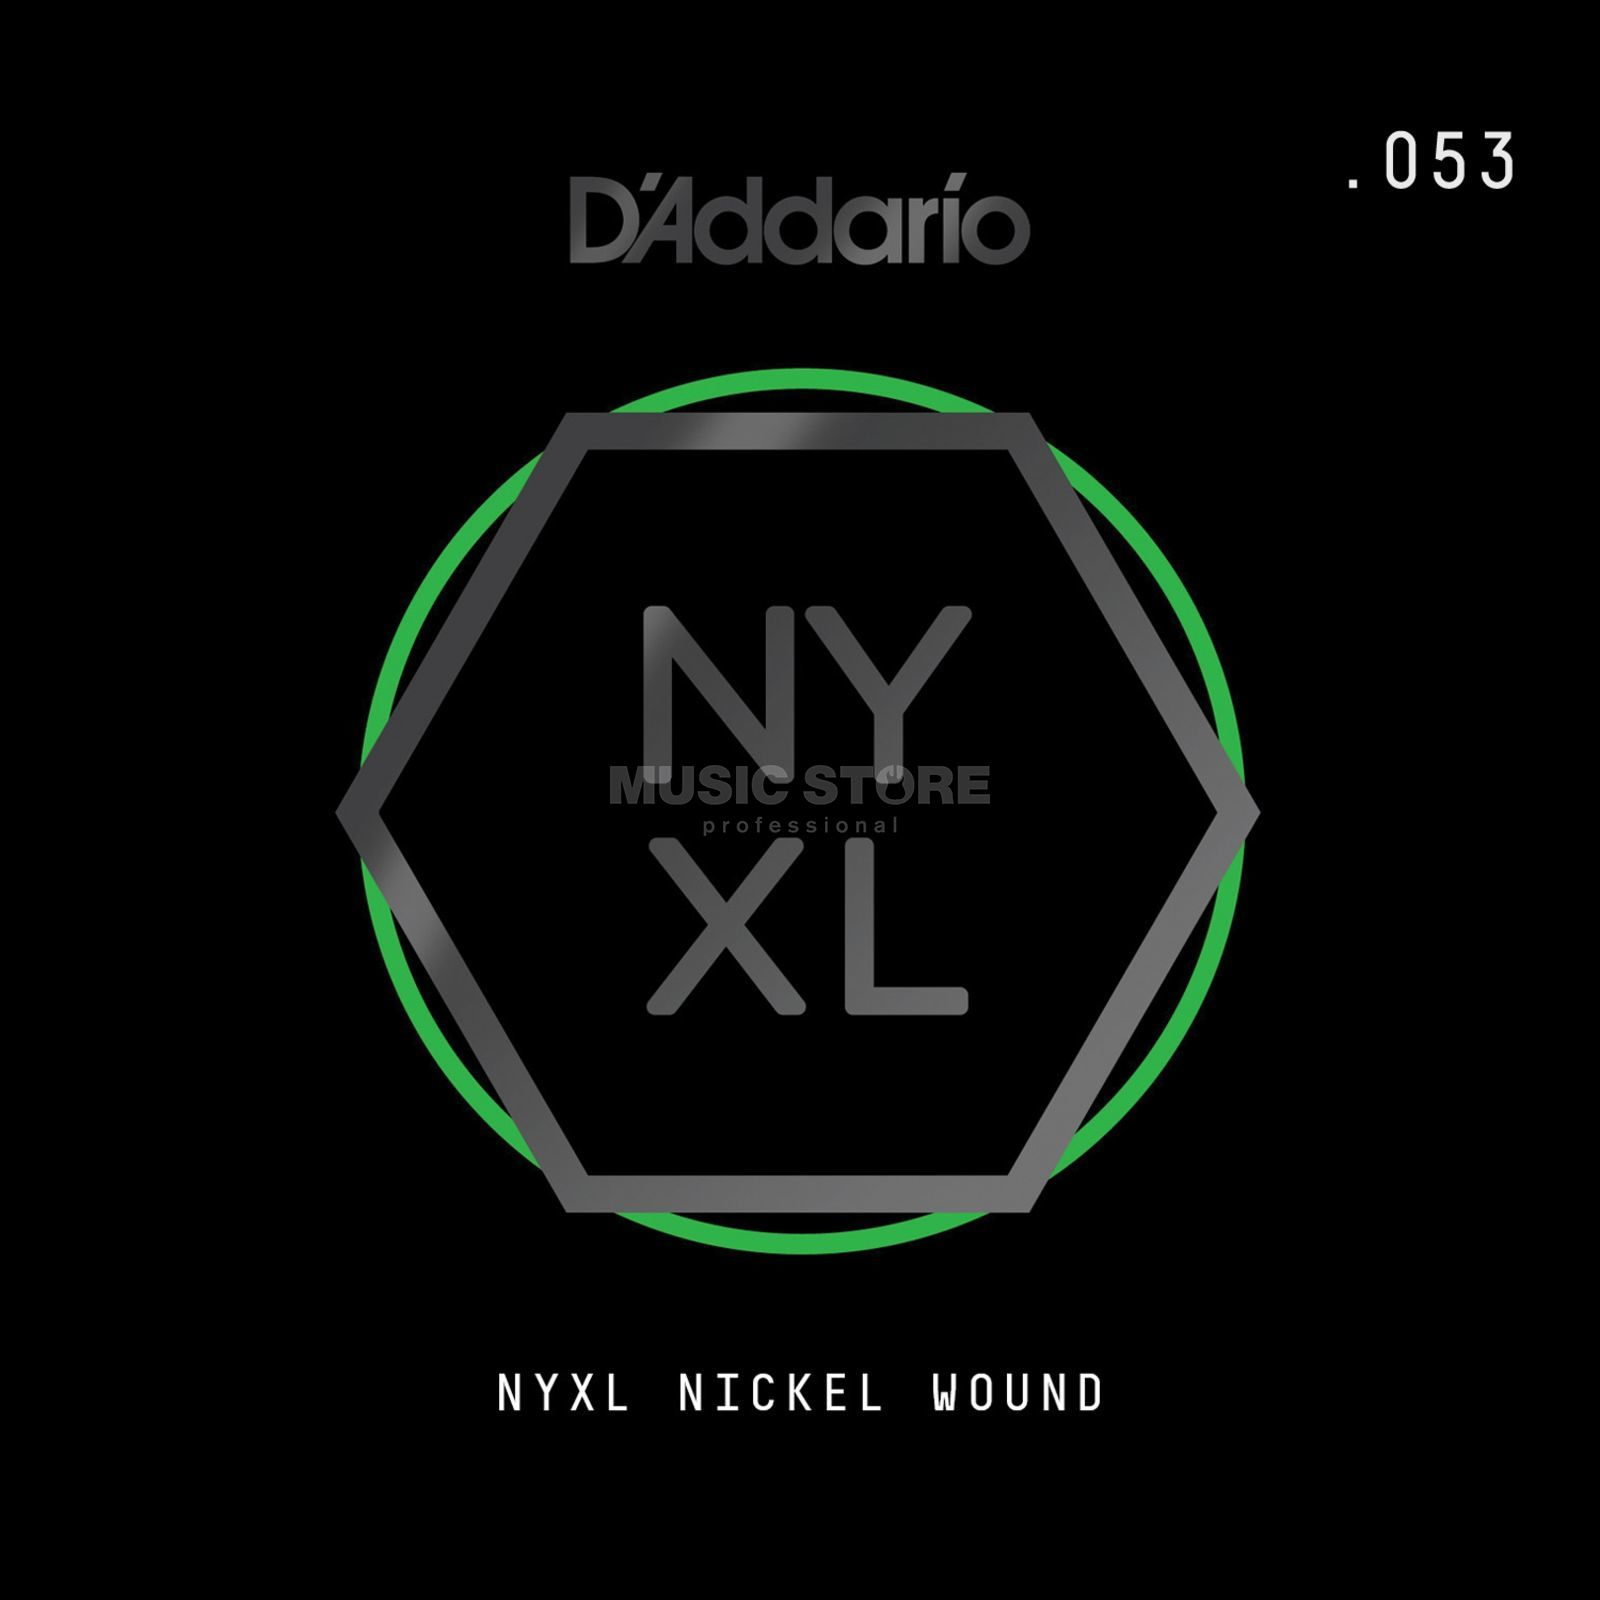 D'Addario NYNW053 Single String Nickel Wound Product Image